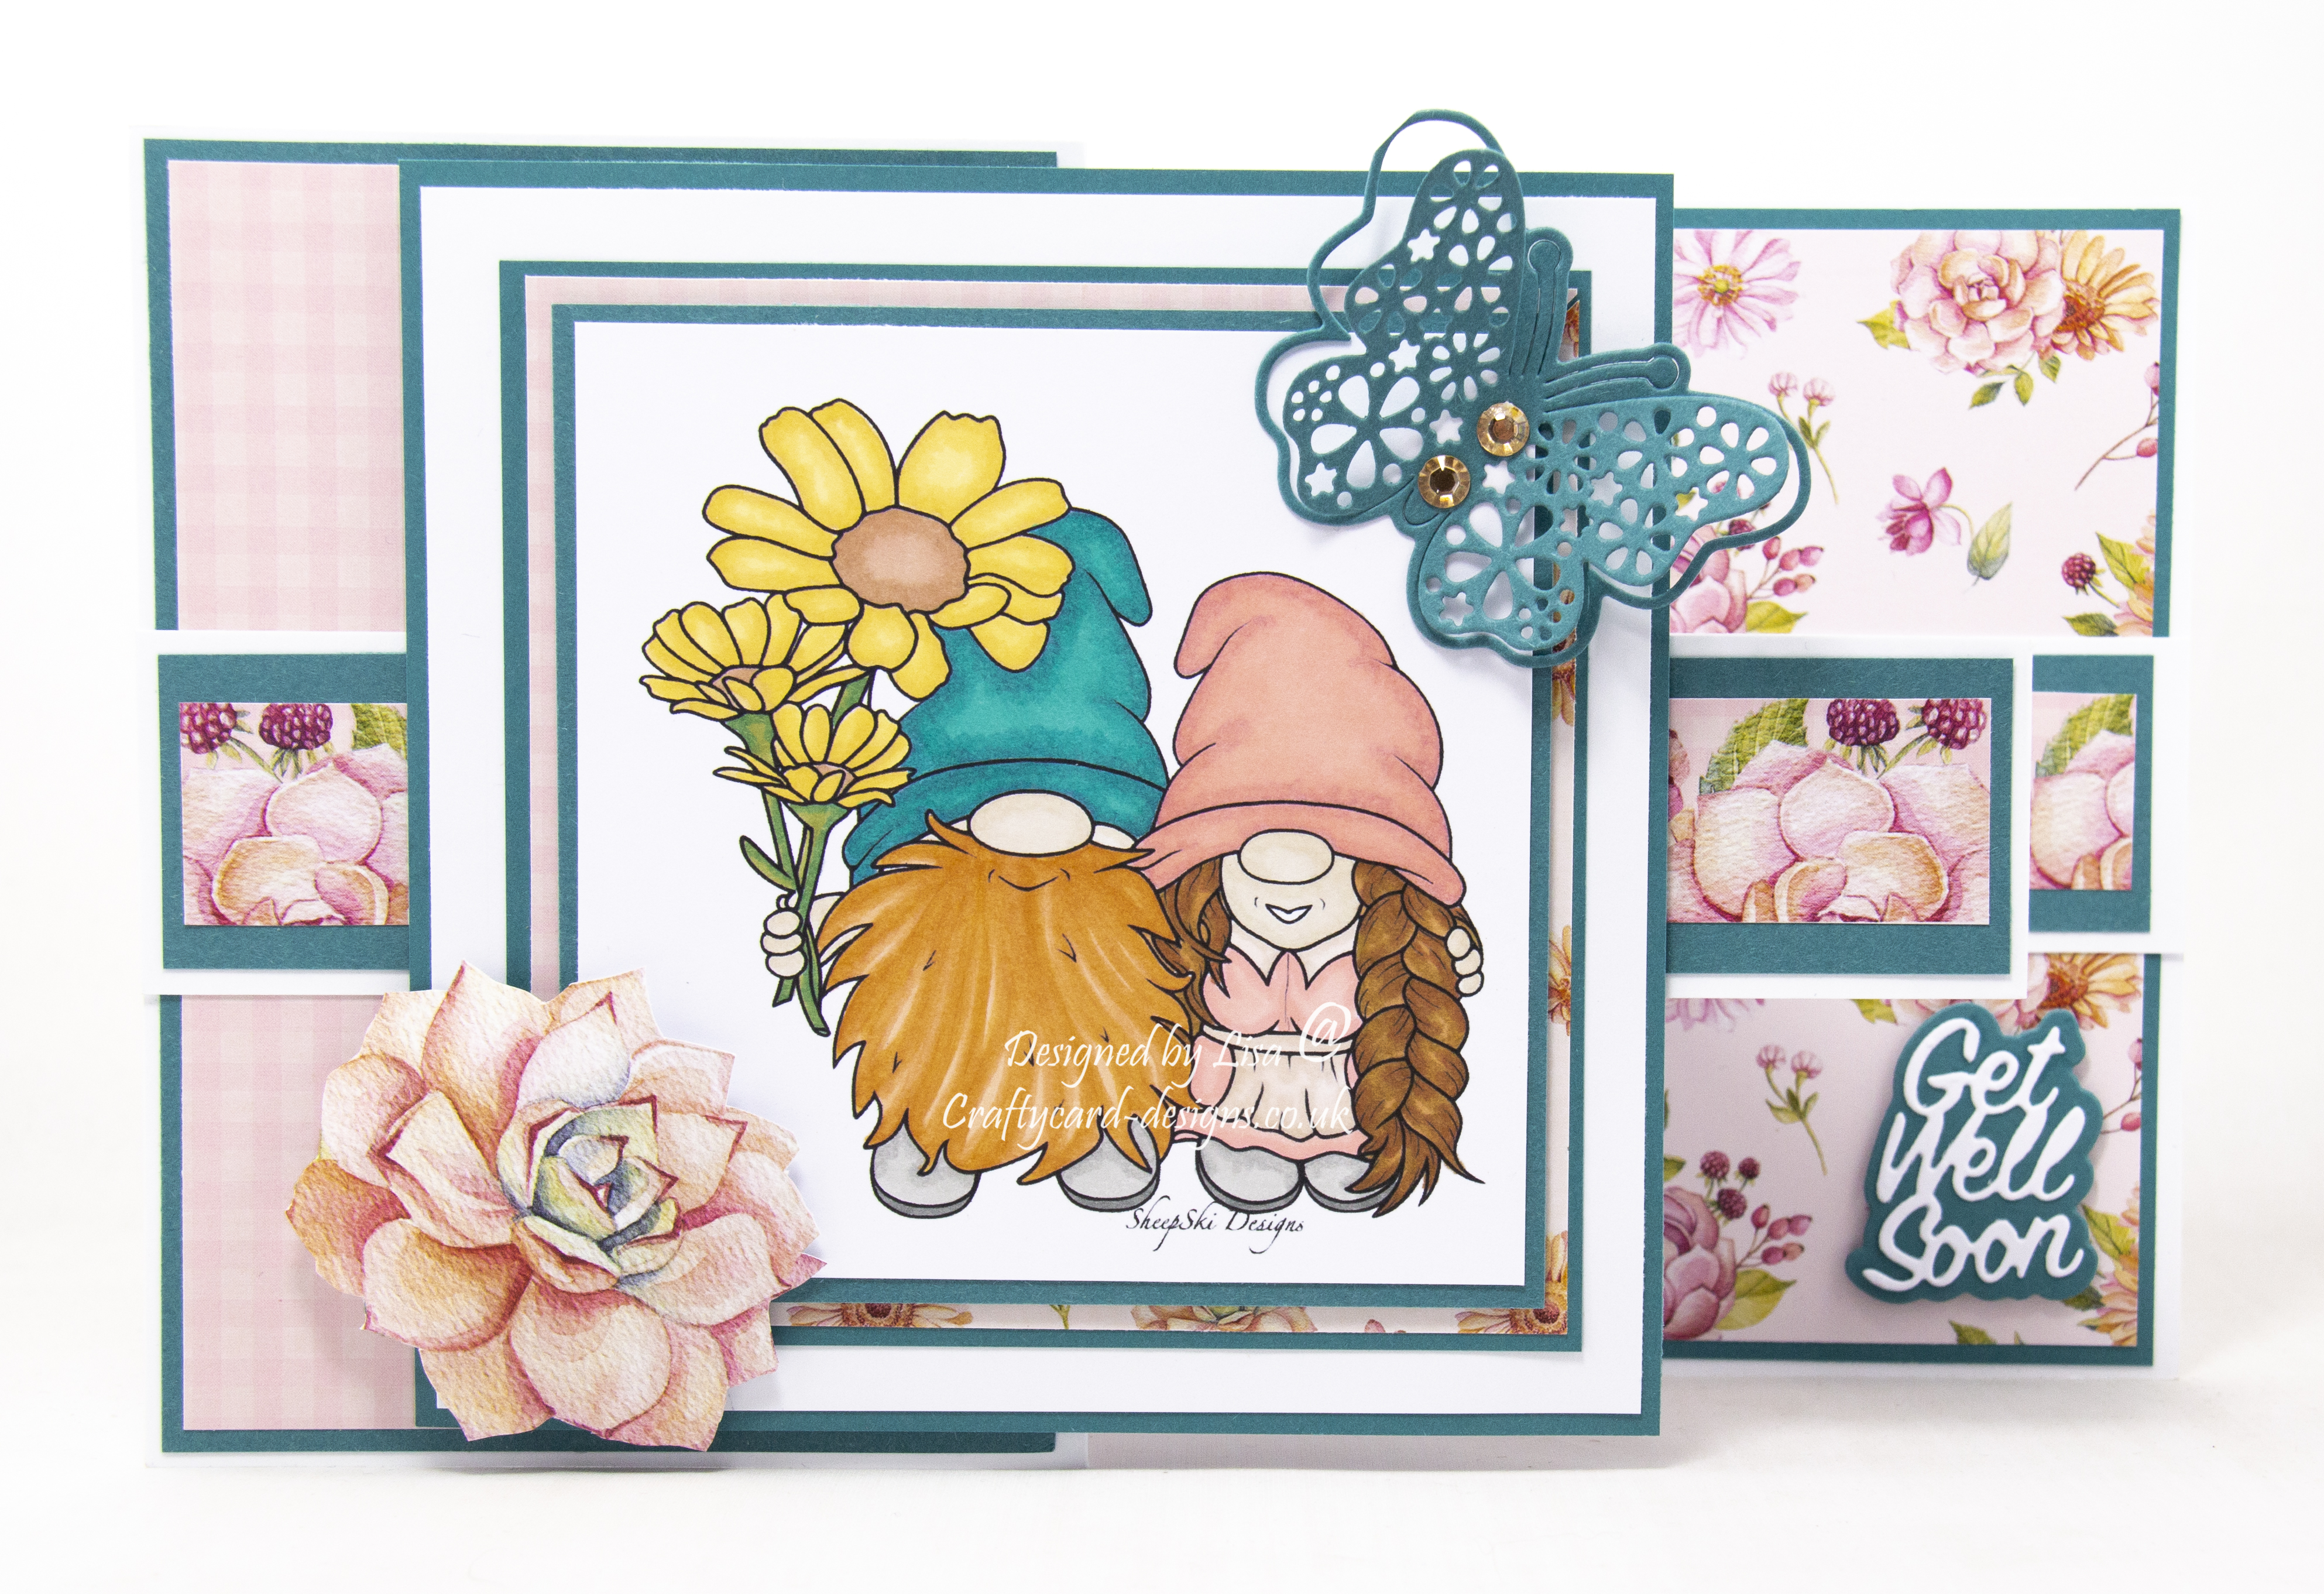 Handmade card using image from SheepSkiDesigns called Giant Daises